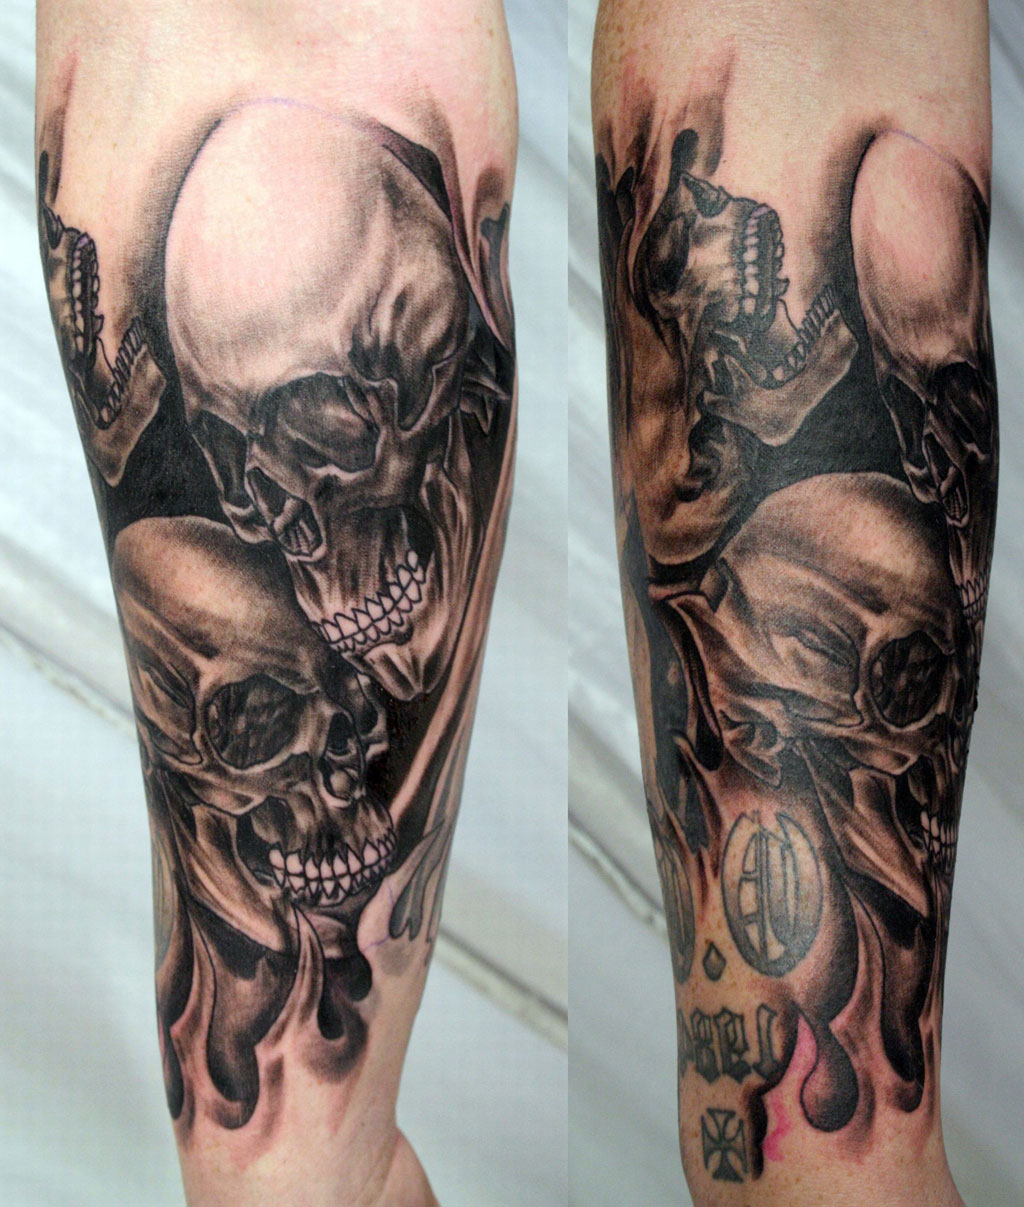 Full Sleeve Skull Tattoos